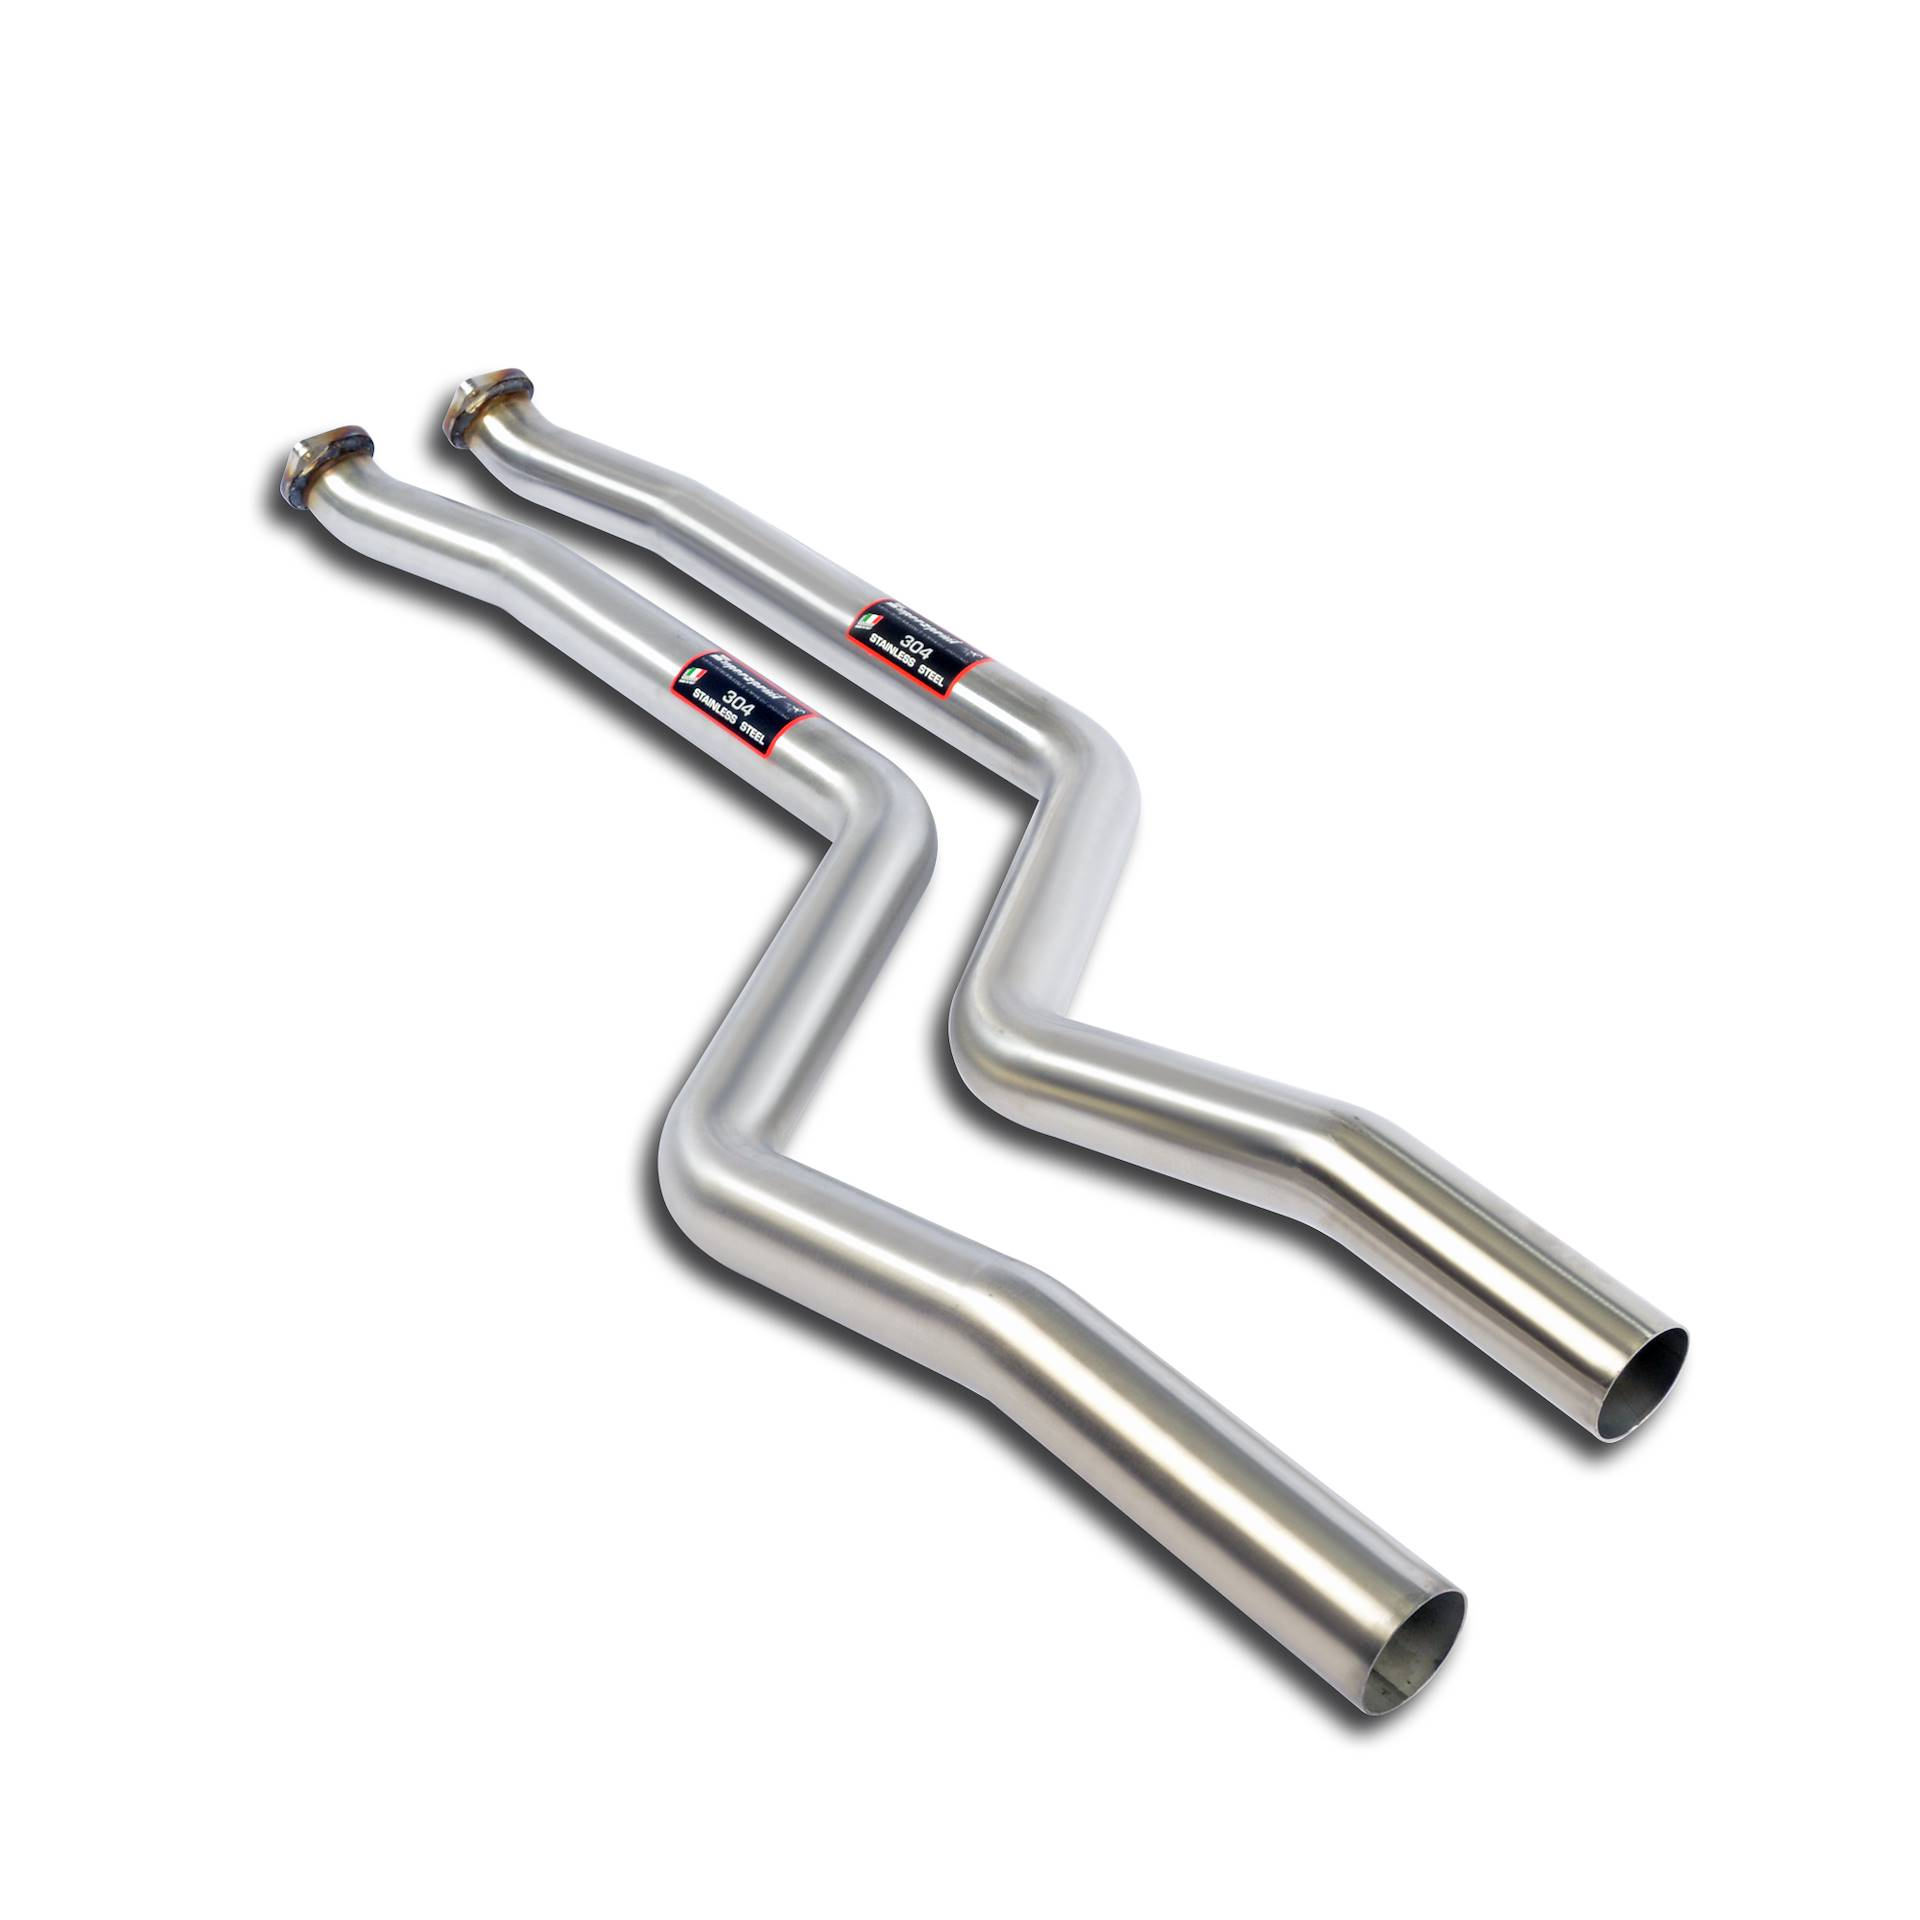 BMW - BMW E90 Sedan 328i / 328xi (USA version - N51 / N52N) 2006 -> 2008 Front pipes kit, performance exhaust systems